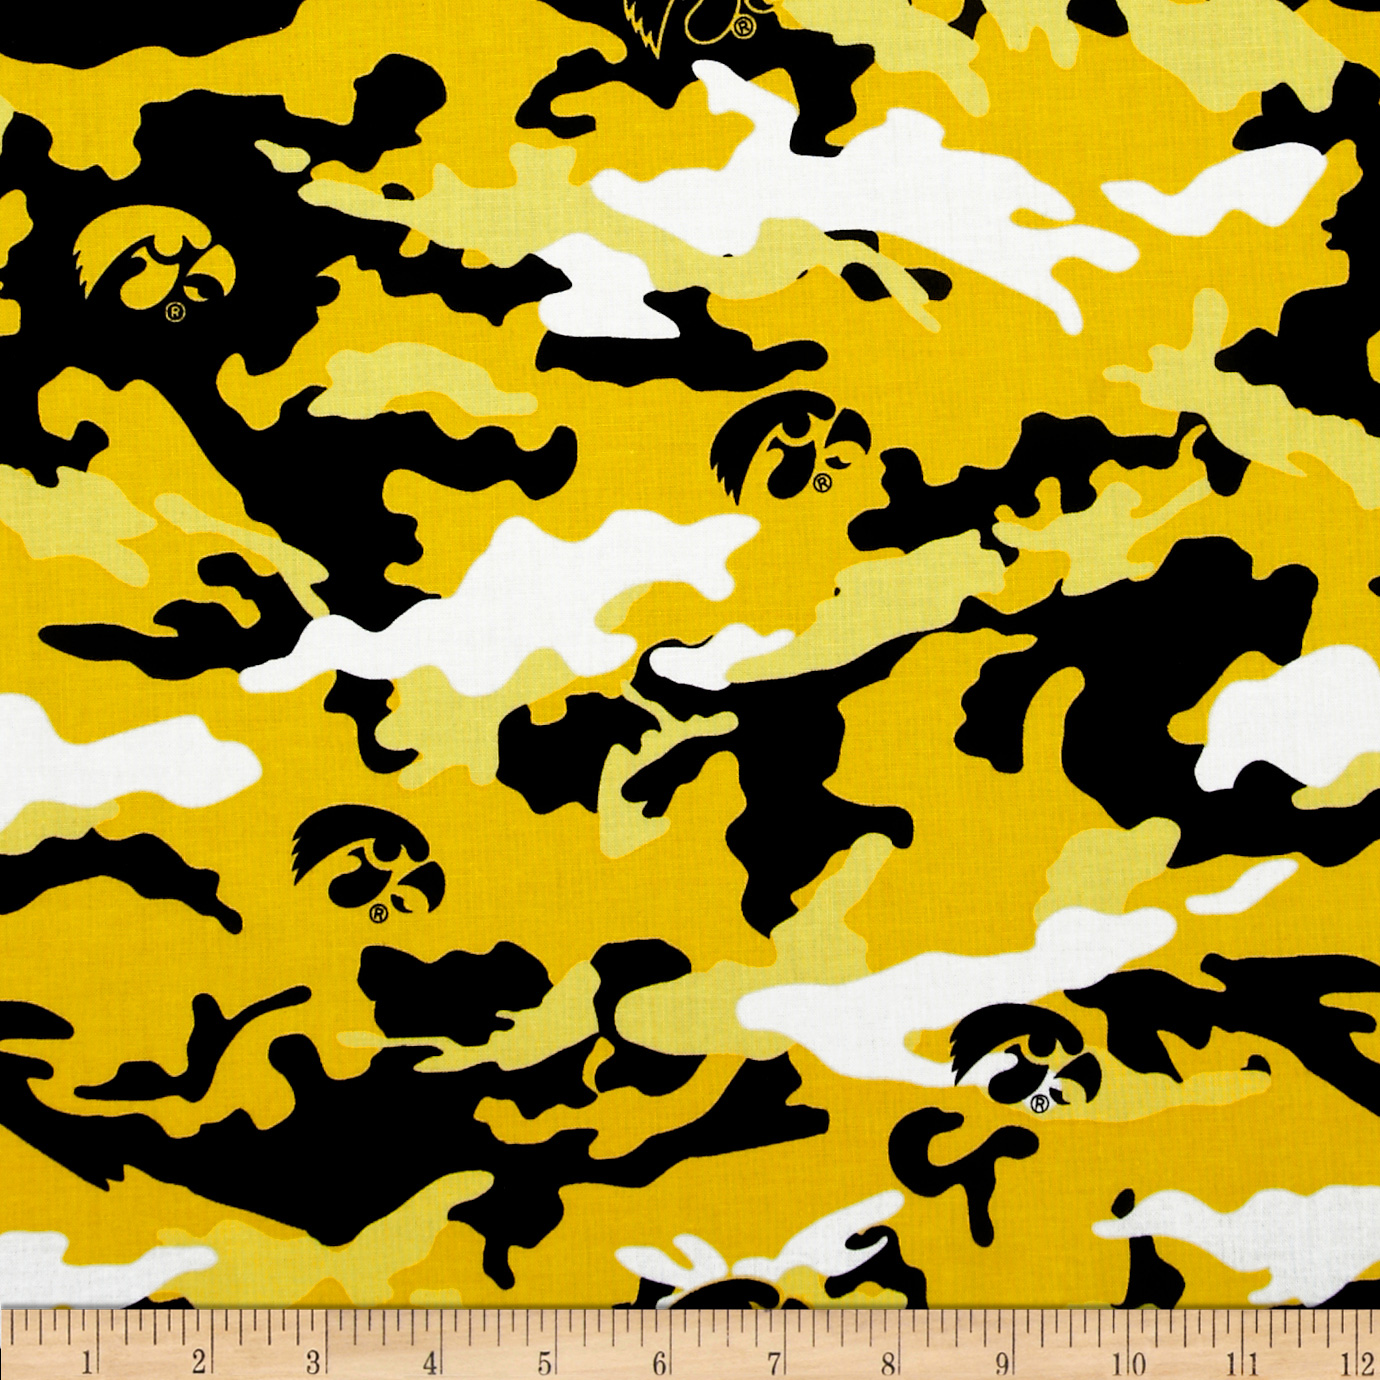 University of Iowa Cotton Camouflage Yellow/Black Fabric